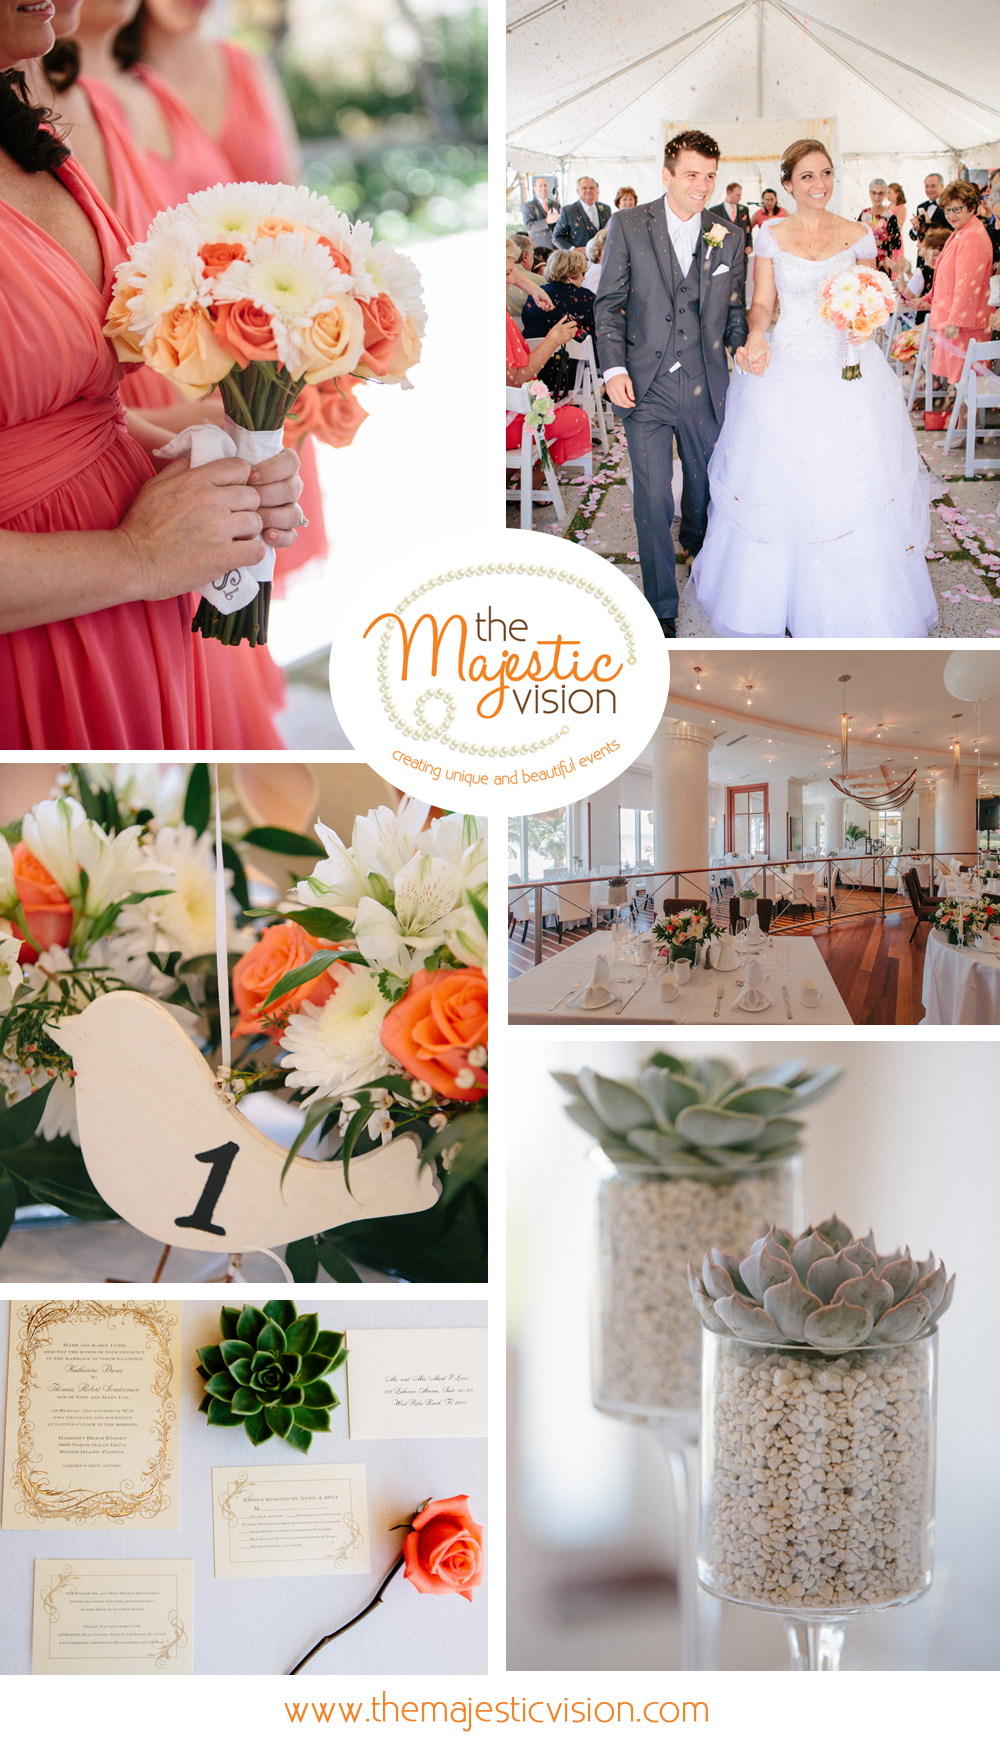 Modern White, Pink, Orange and Green Wedding Reception | The Majestic Vision Wedding Planning | Marriott Singer Island in Palm Beach, FL | www.themajesticvision.com | Robert Madrid Photography